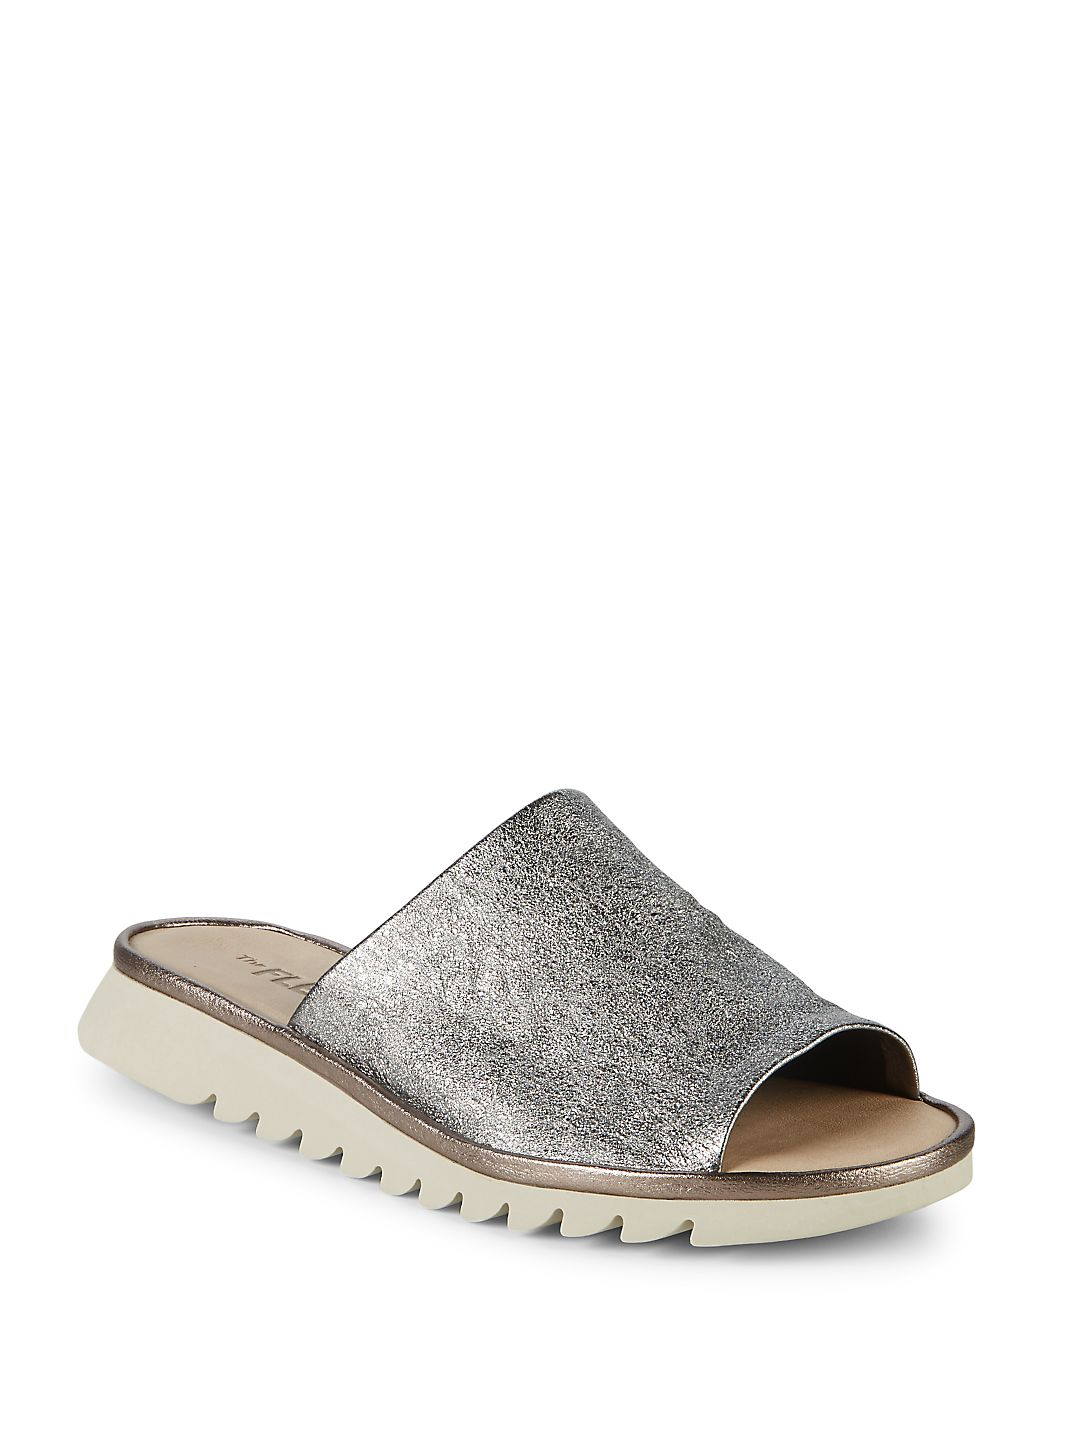 Shore Thing Leather Sandals